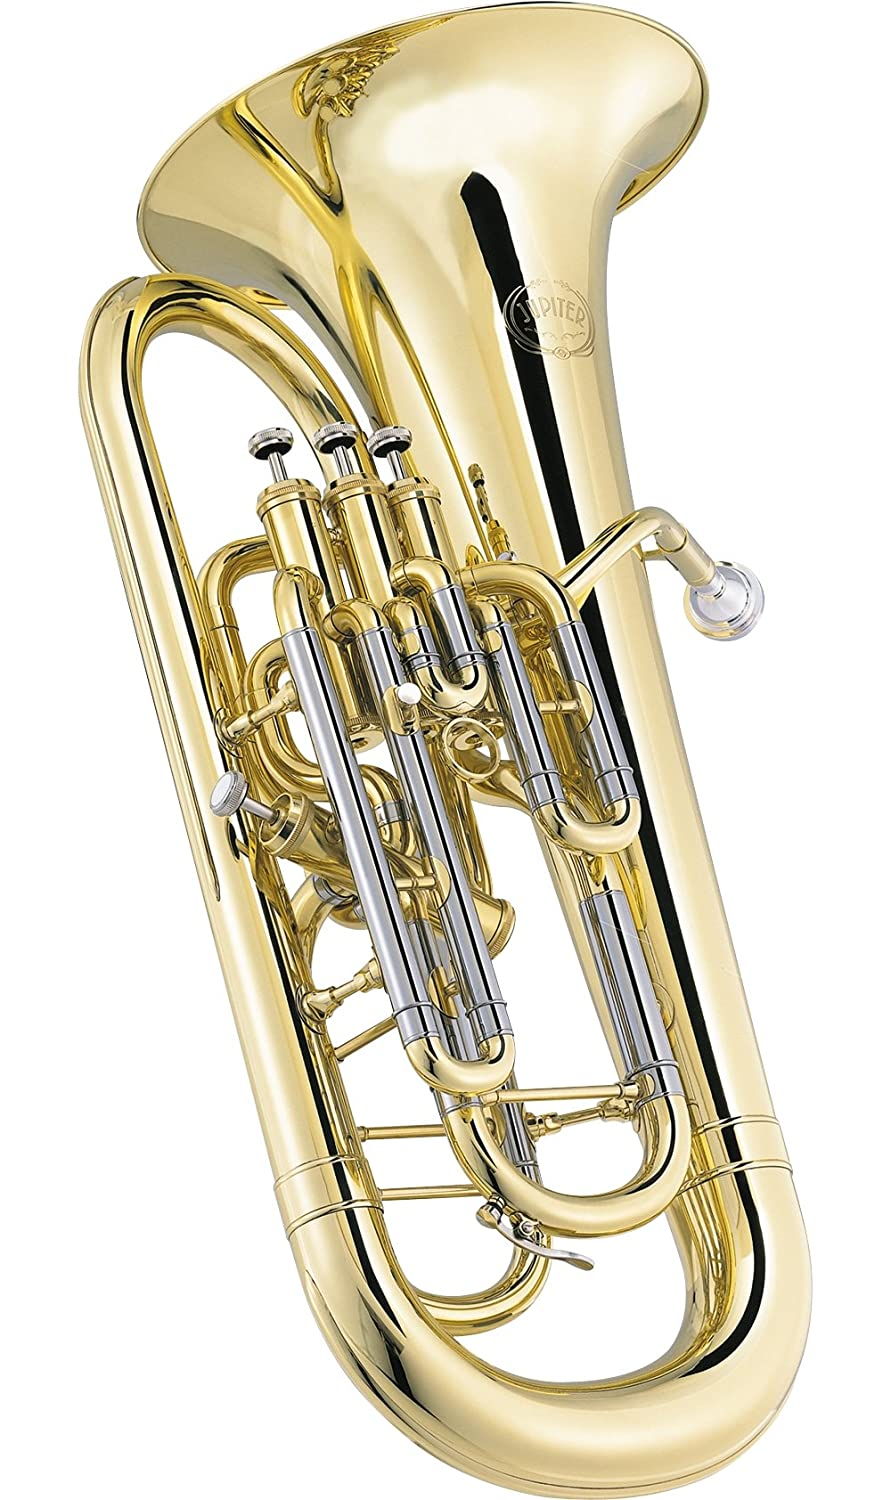 Jupiter JEP1020 in B Euphonium - Messing lackiert EP570L JT-570L